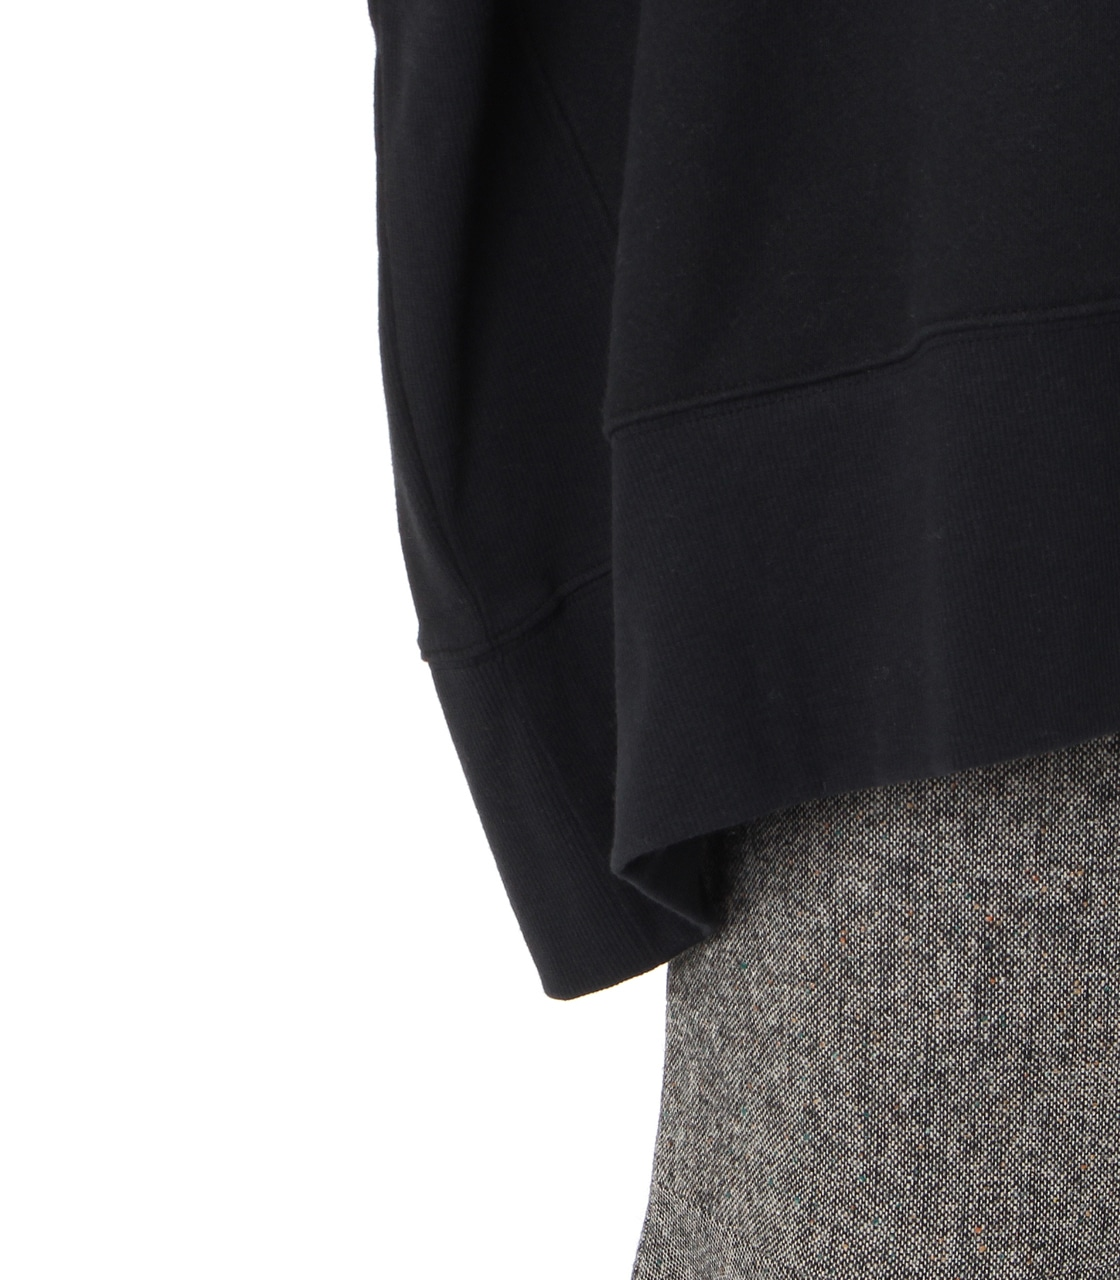 【AZUL BY MOUSSY】変形ドルマン裏毛チュニック 詳細画像 BLK 6